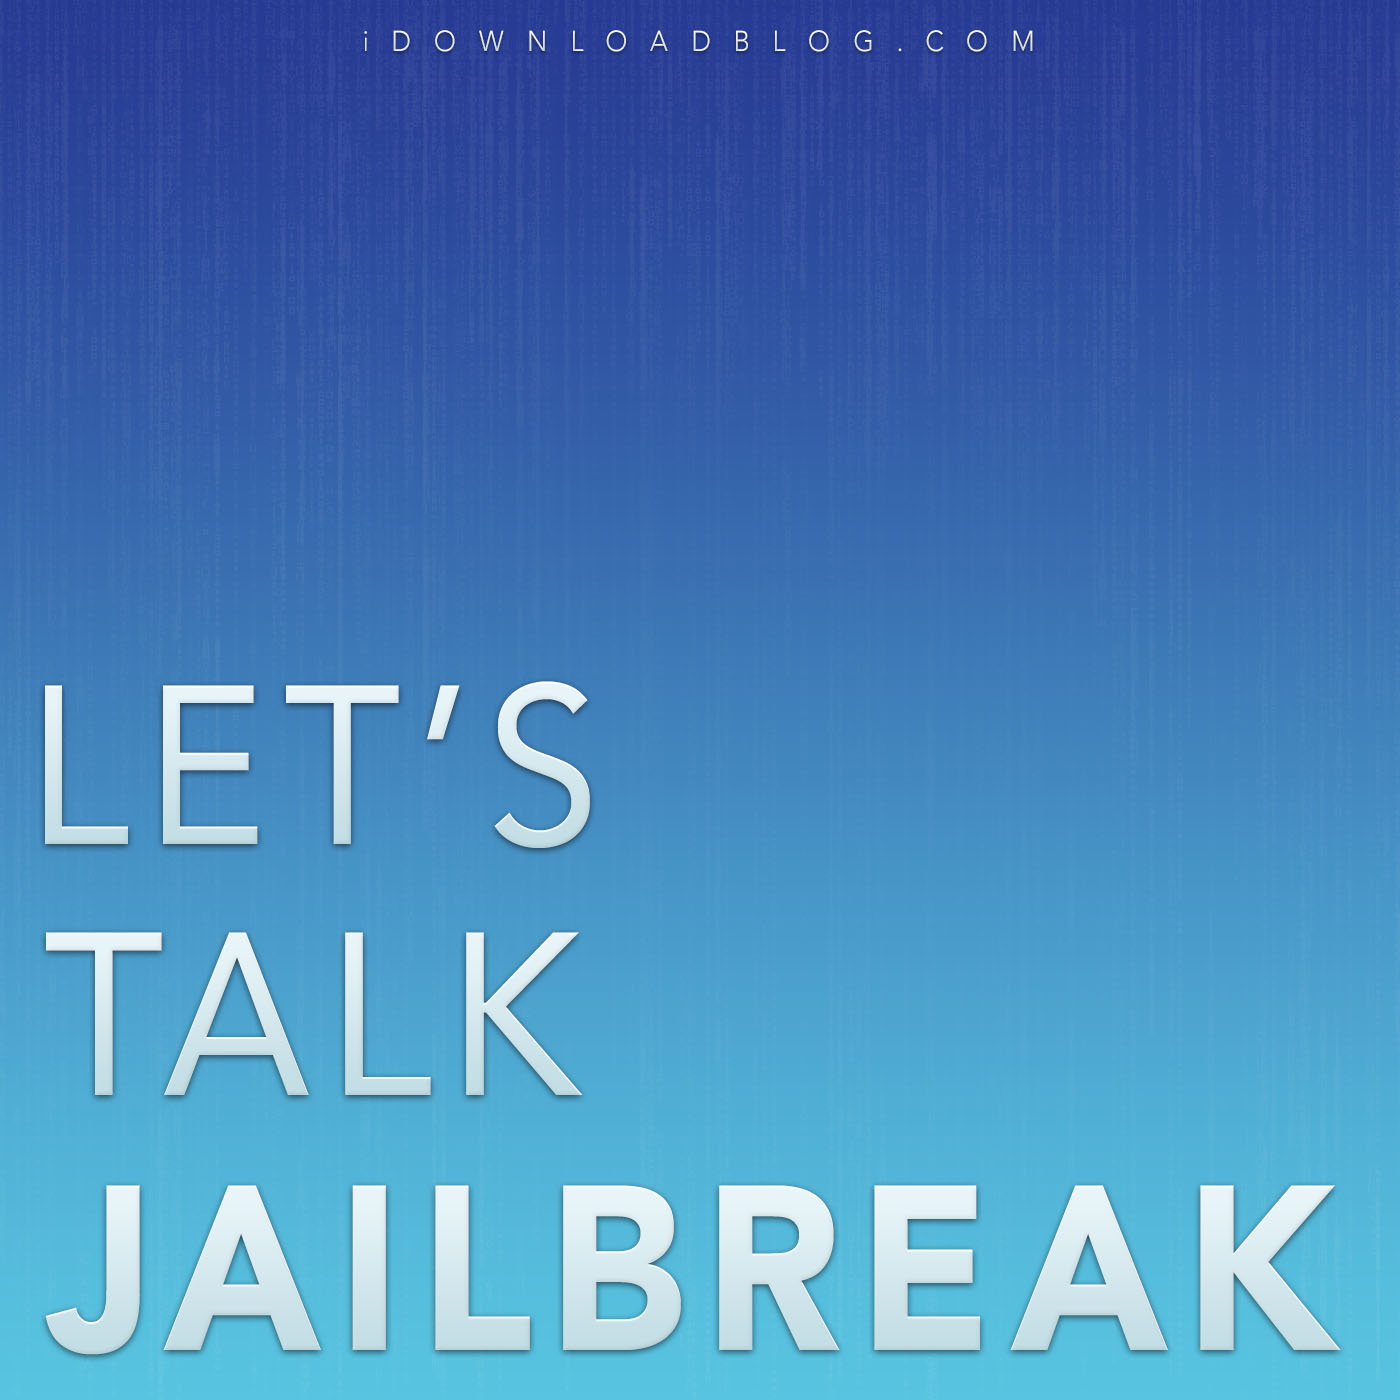 37: The iOS 7 jailbreak